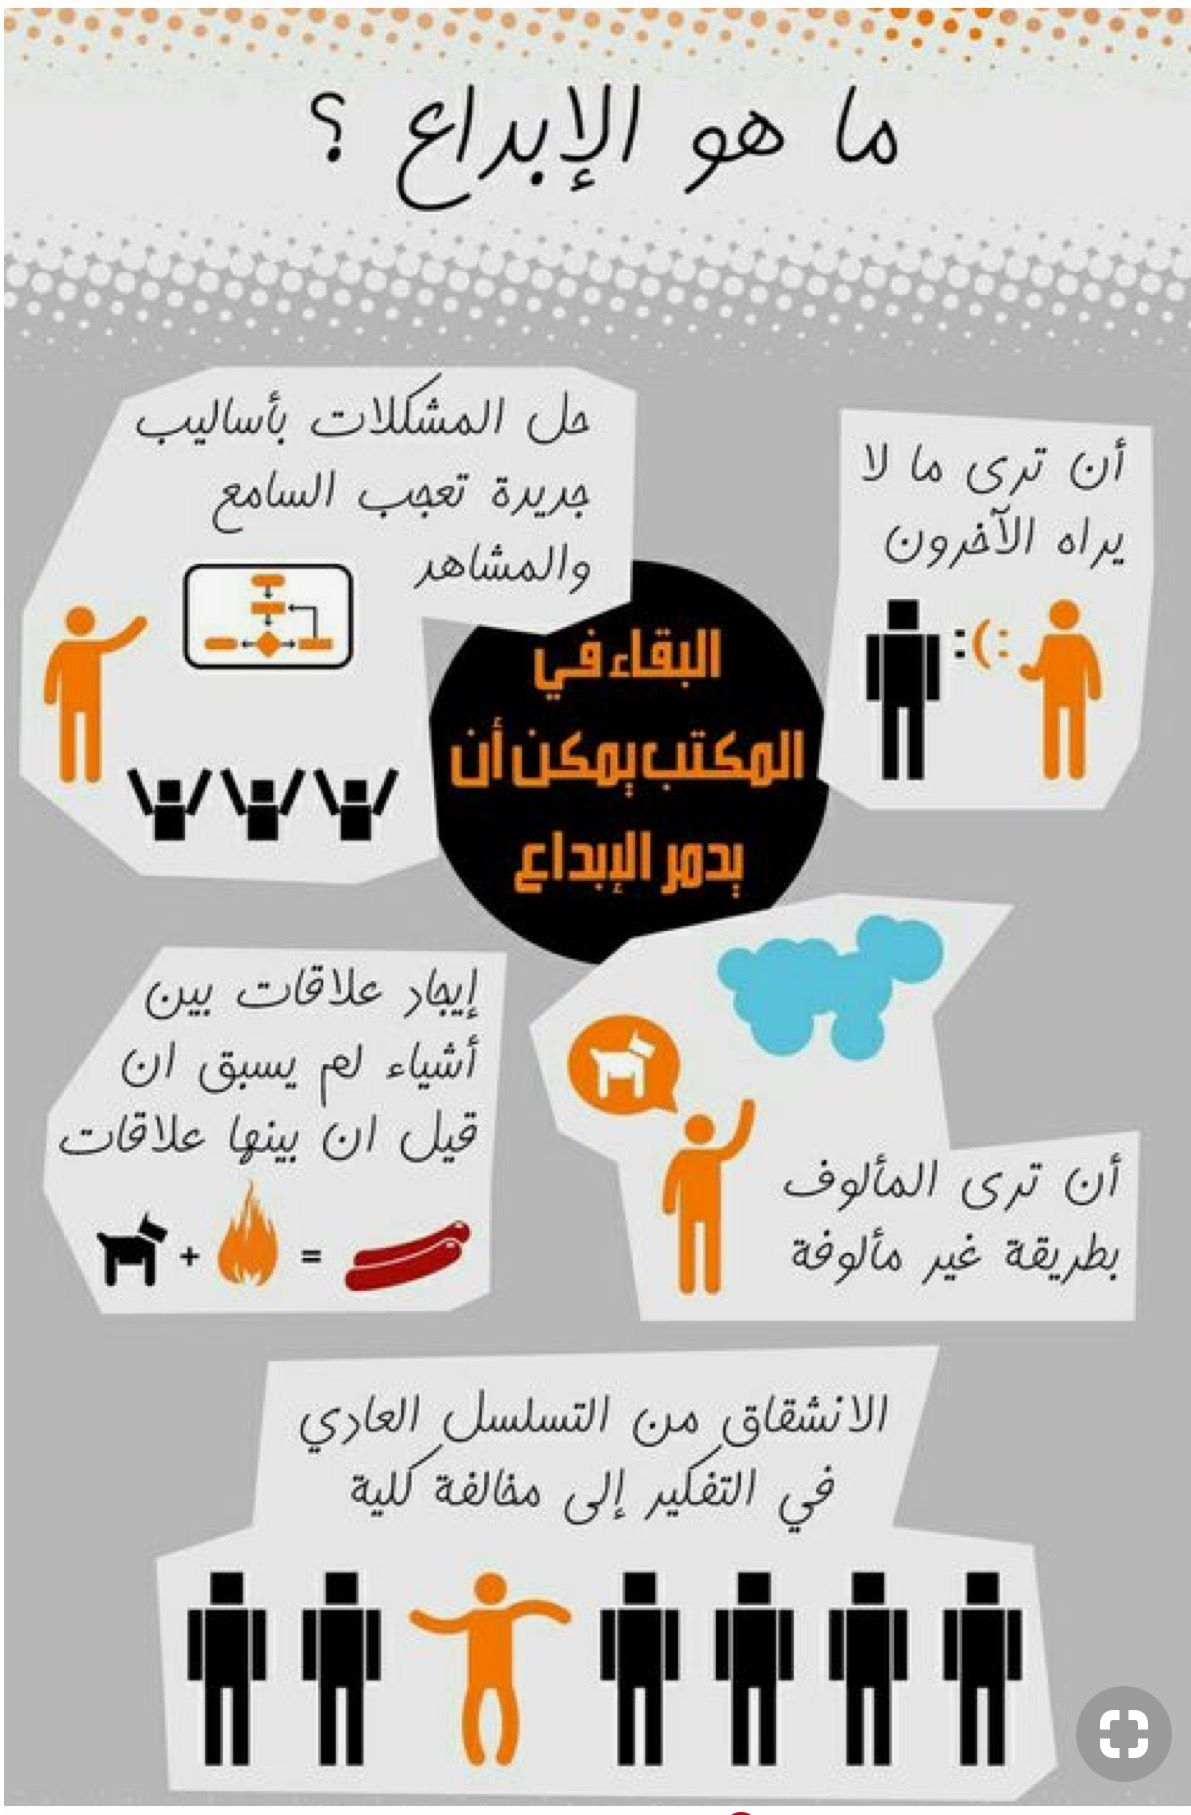 Pin By Shaimaa Zaghlool On تطوير الذات Islamic Kids Activities Social Emotional Learning Life Planner Organization